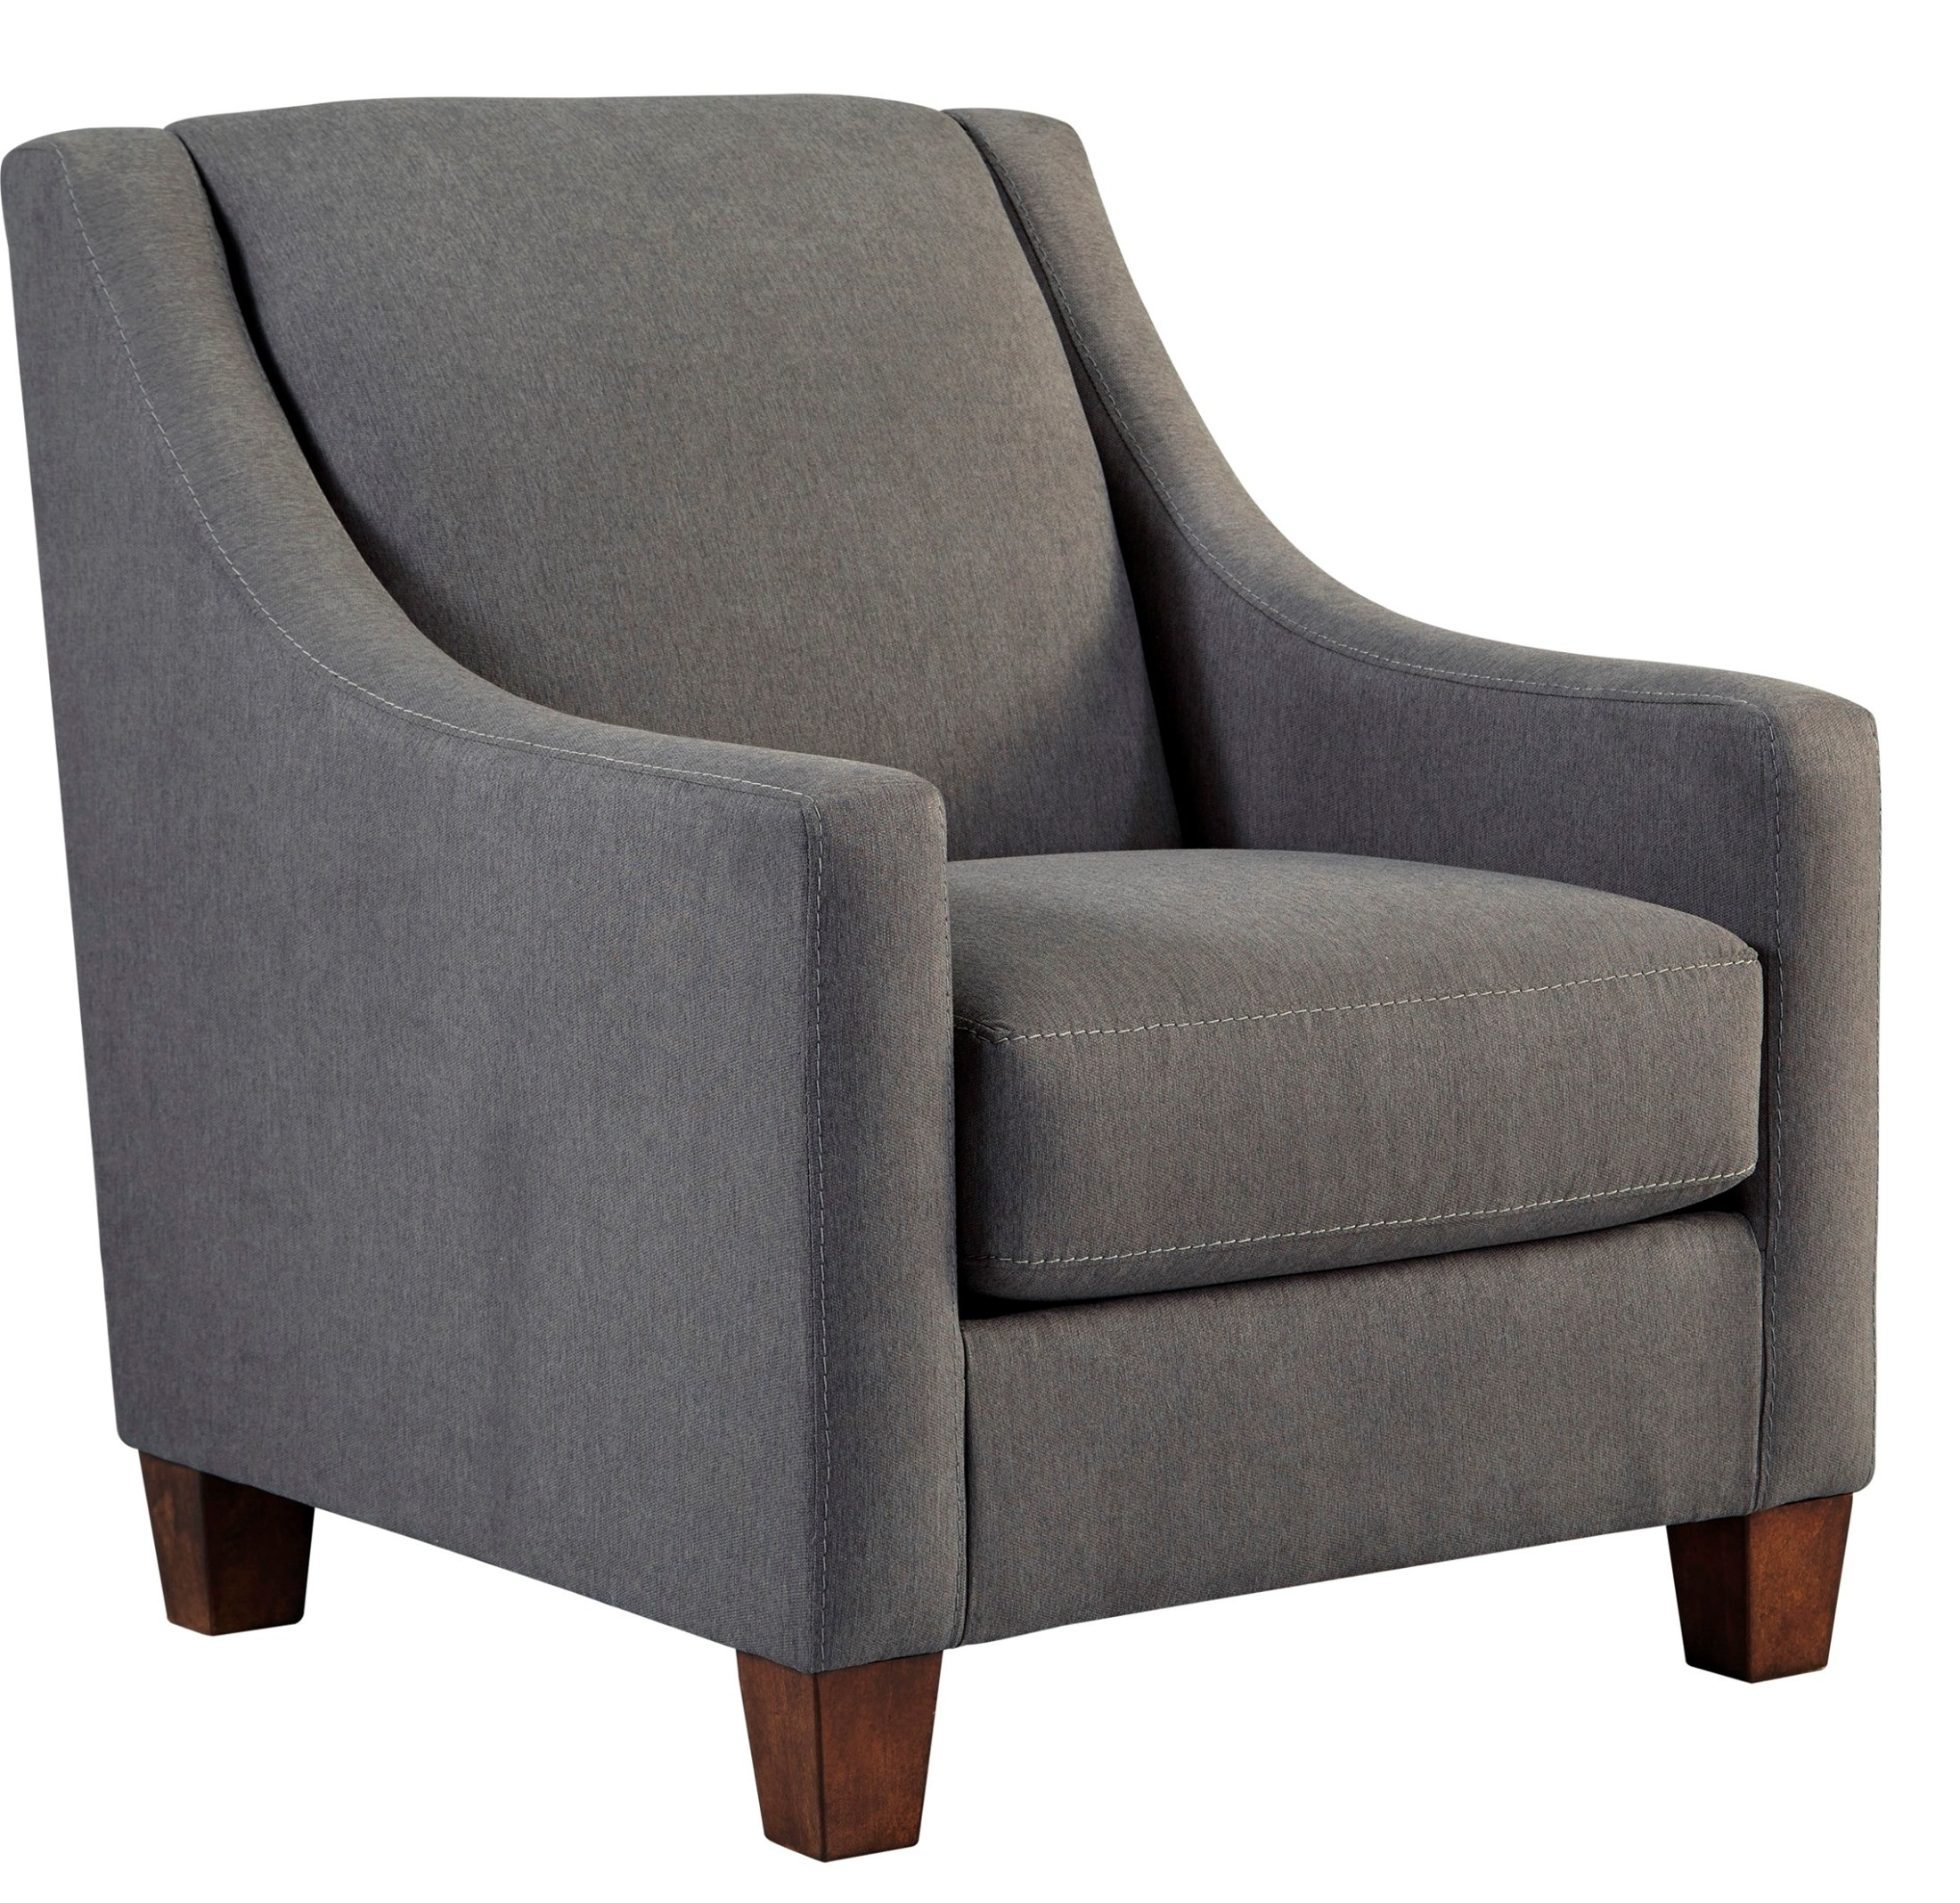 Maier Charcoal Accent Chair From Ashley 4520021